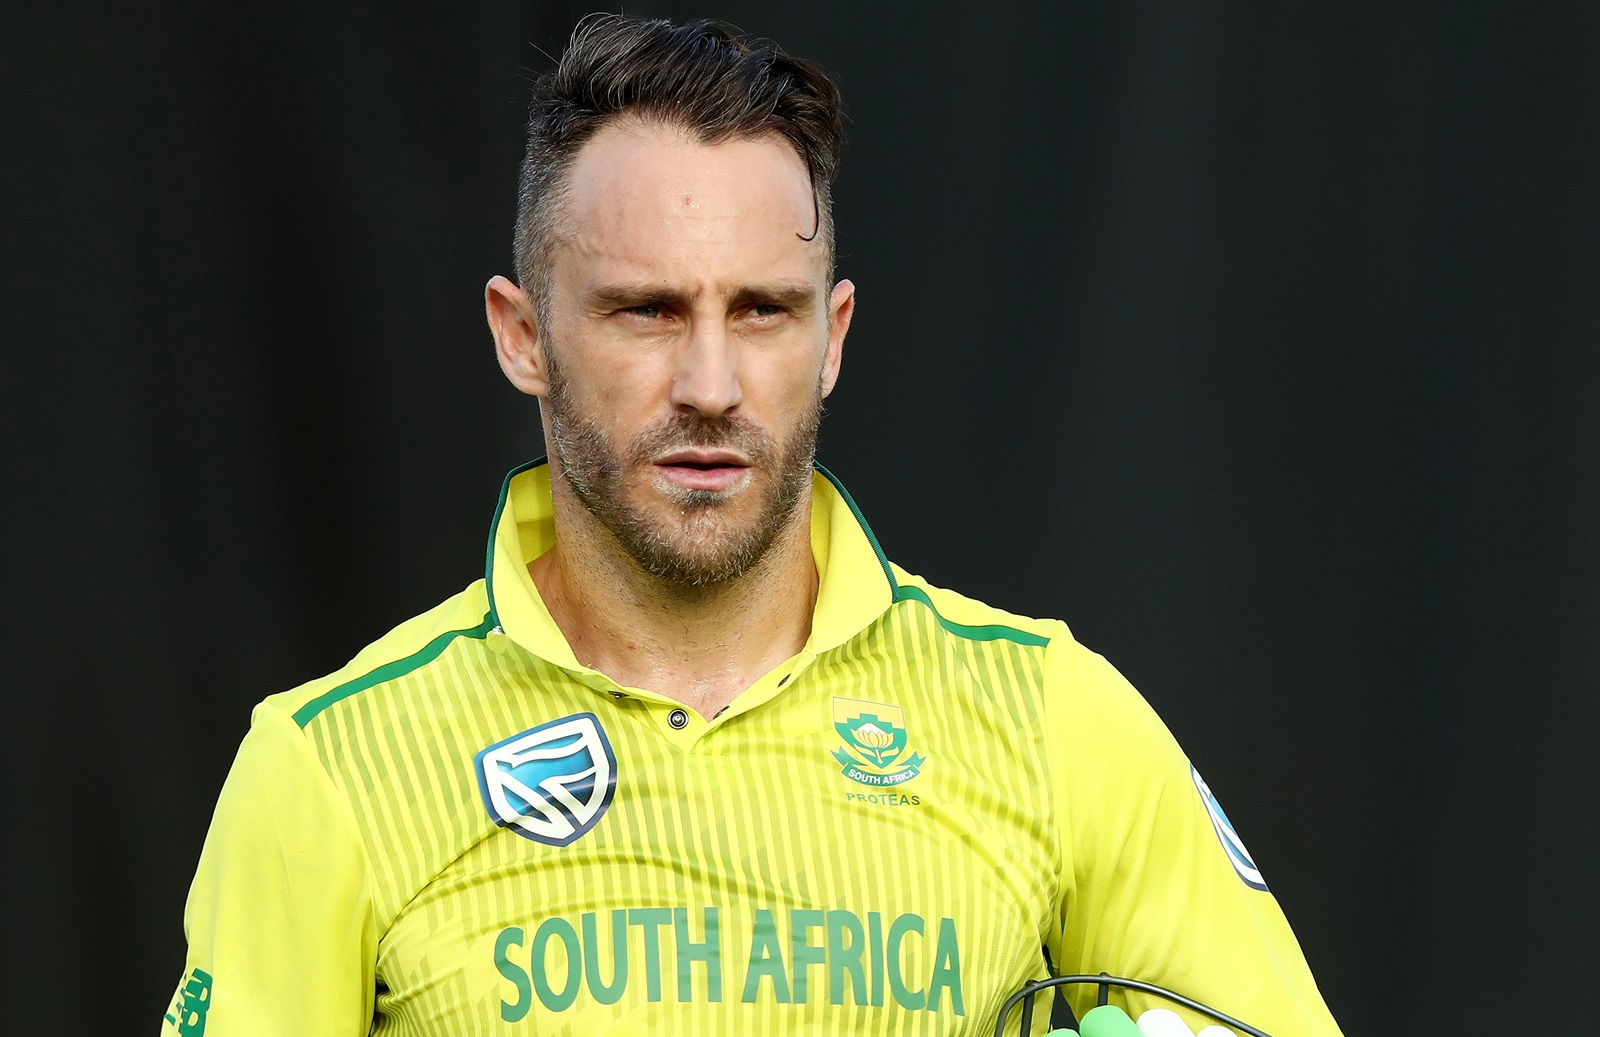 faf du plessis photo